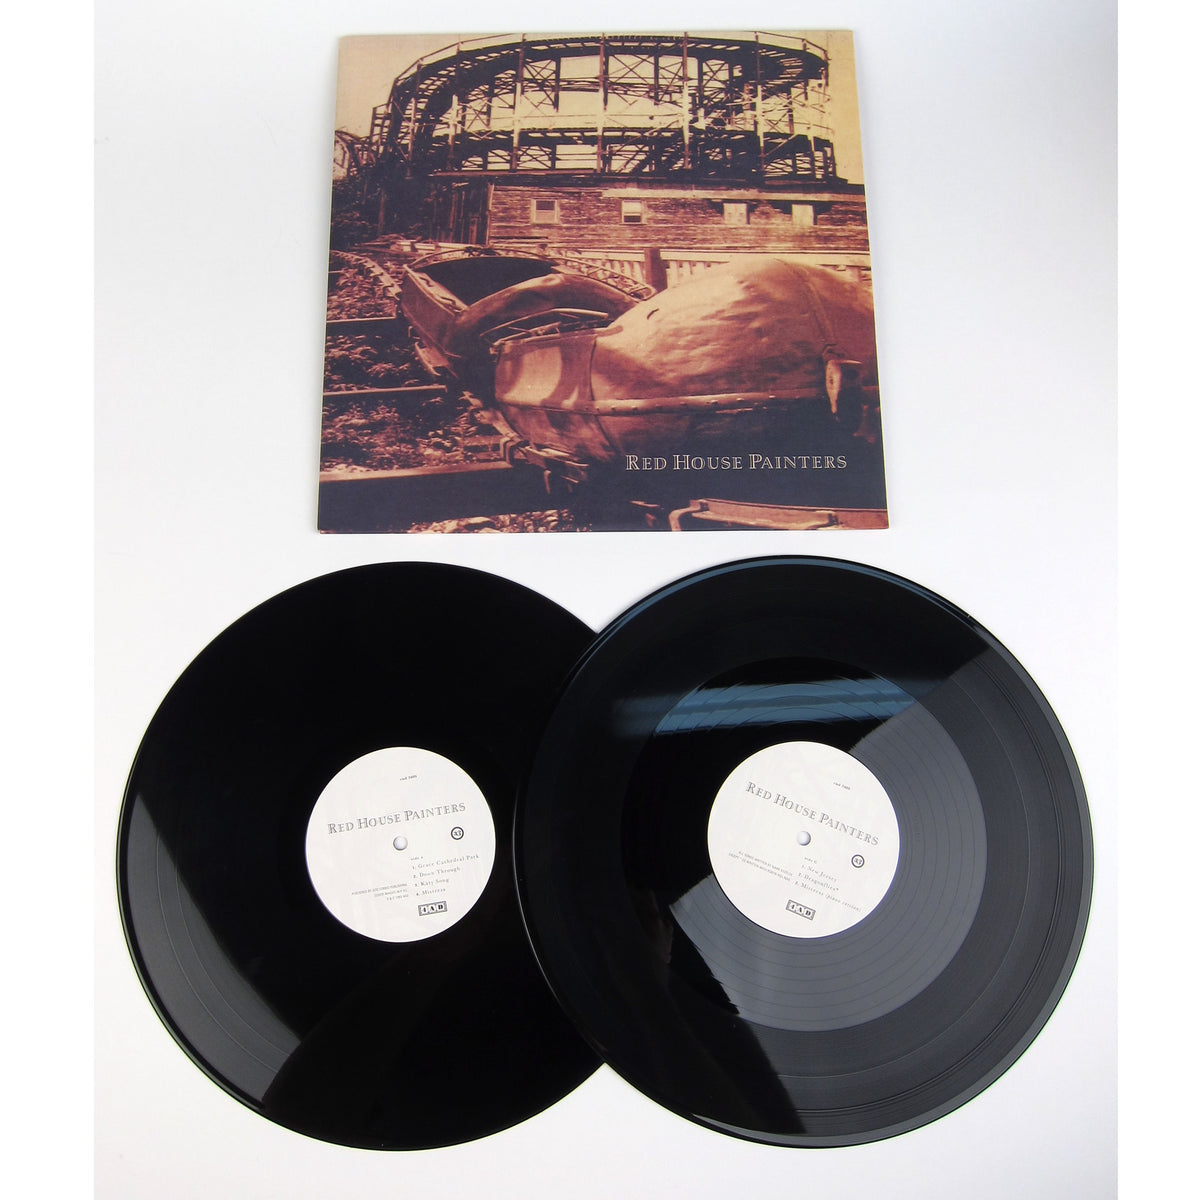 Red House Painters: Red House Painters I (Rollercoaster) Vinyl 2LP